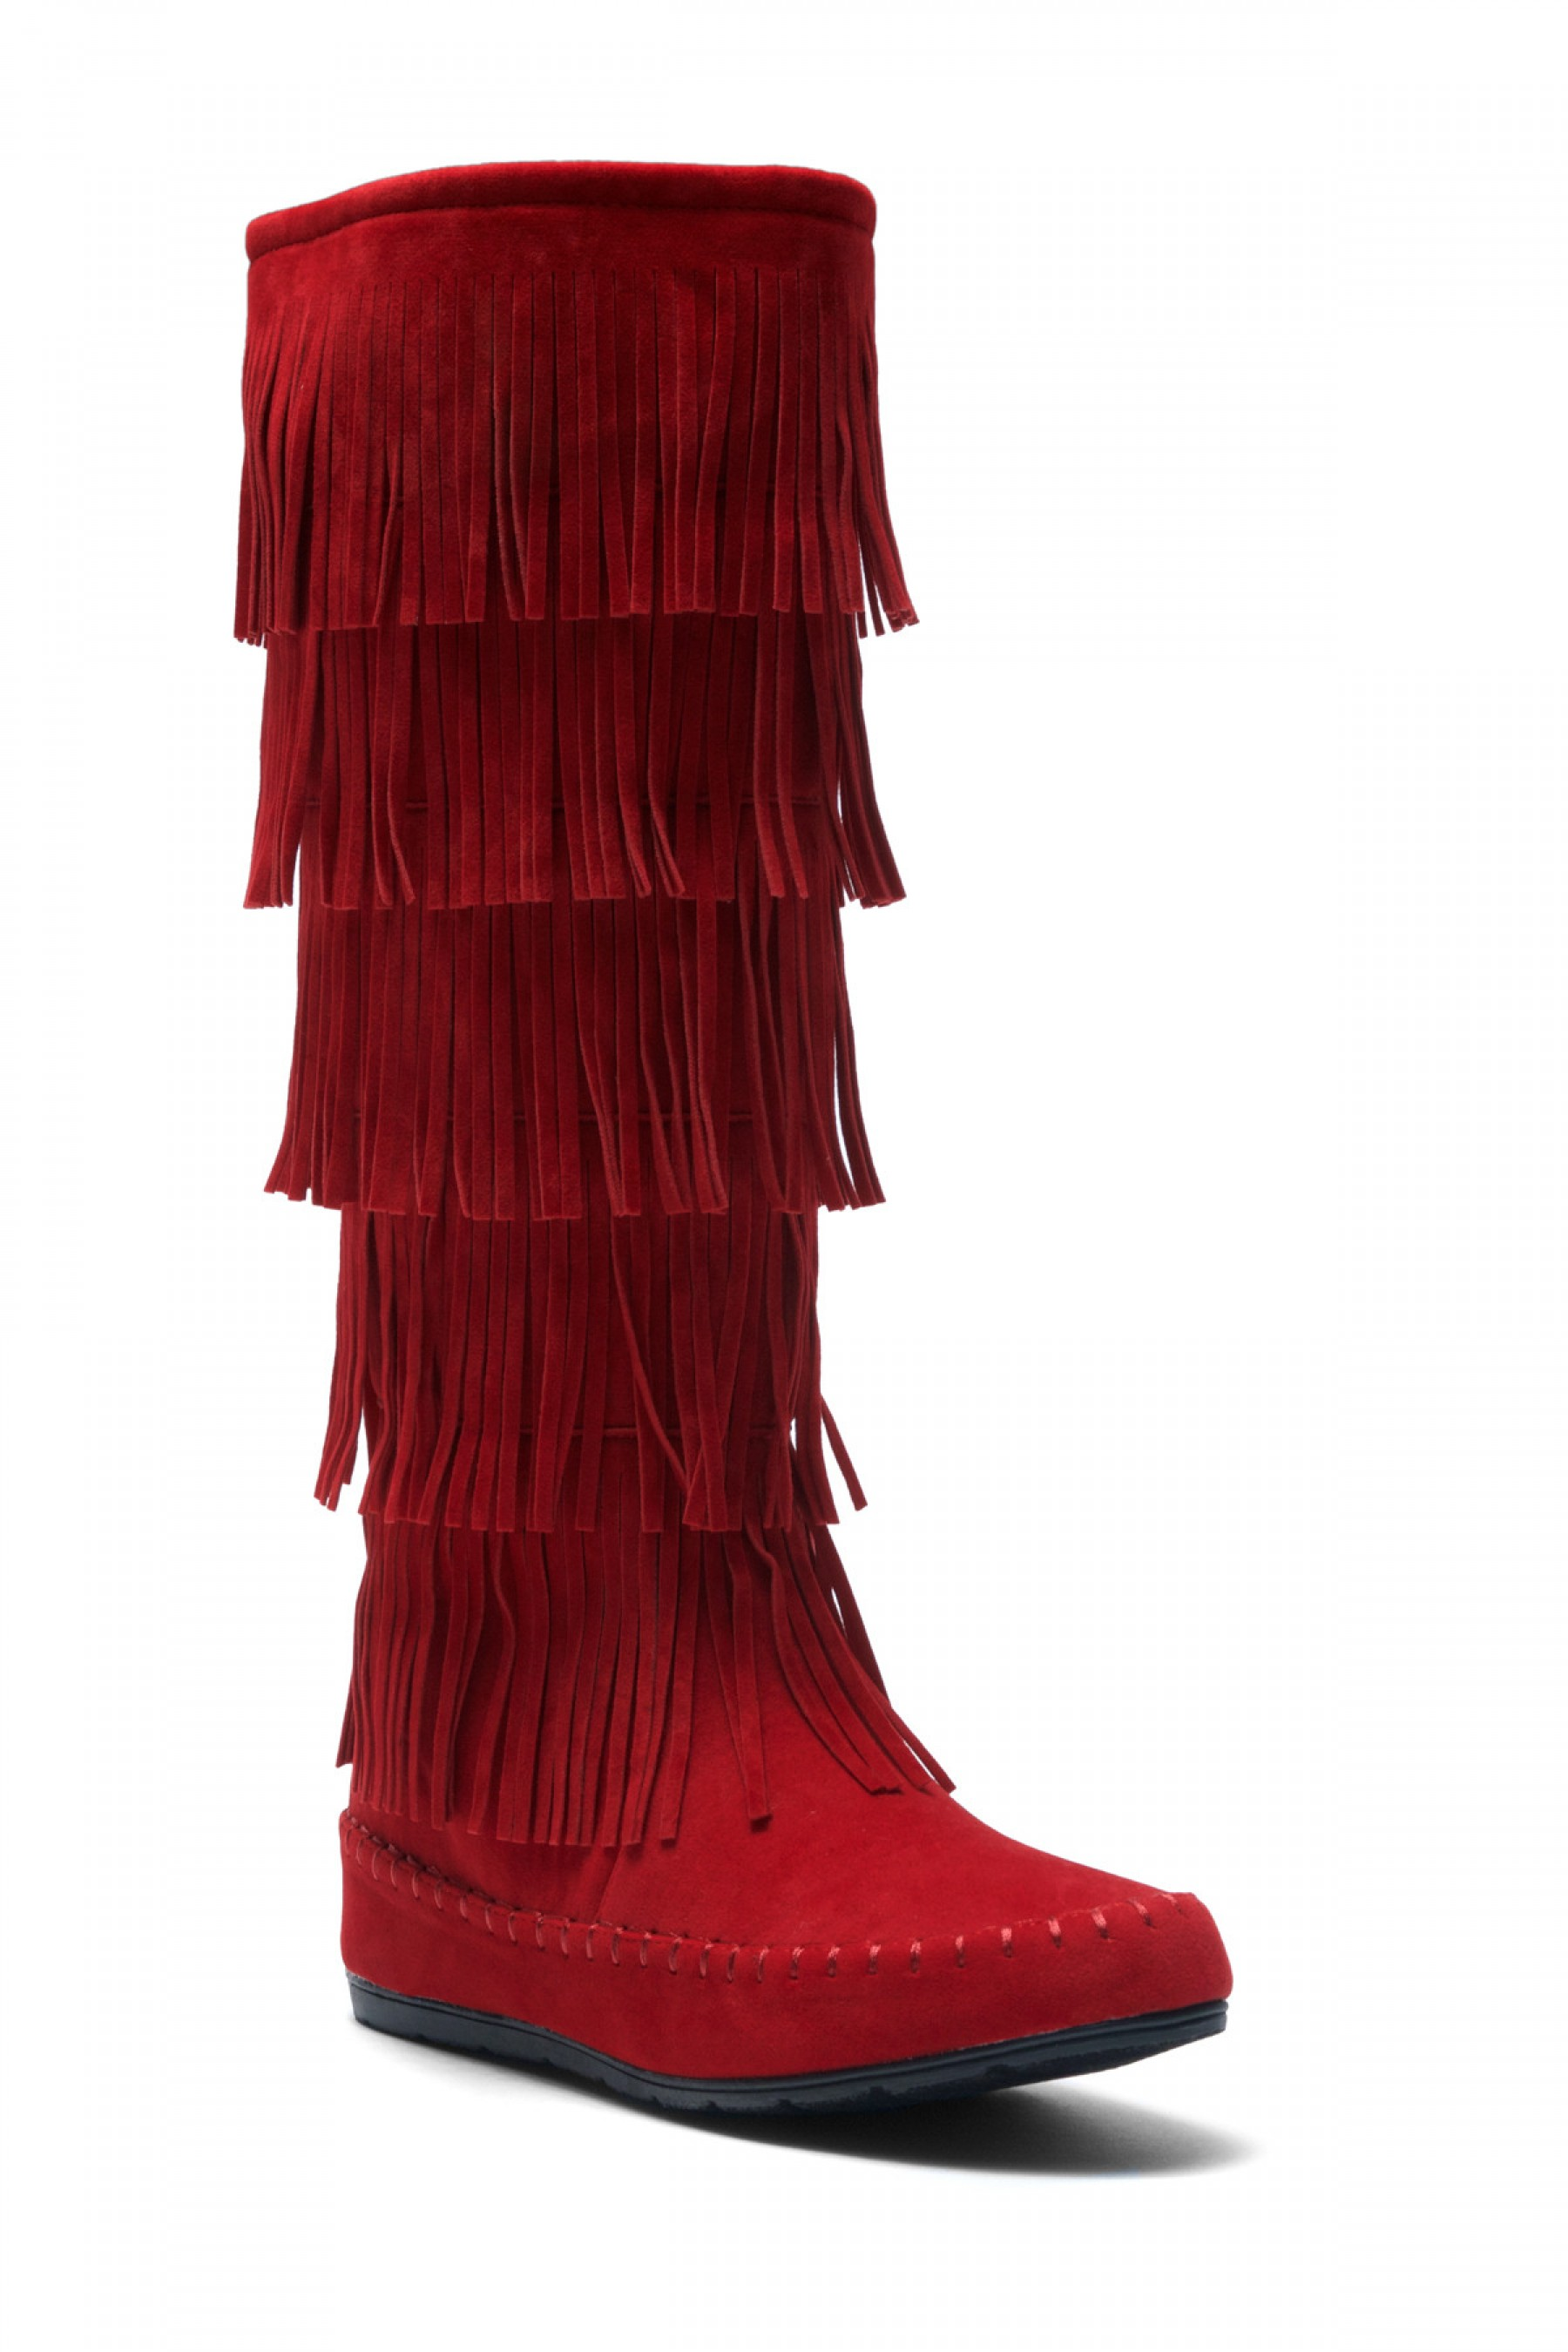 moccasin boots womenu0027s burgundy maddyyee faux suede knee high fringed five-layer moccasin  boots sdudgrc